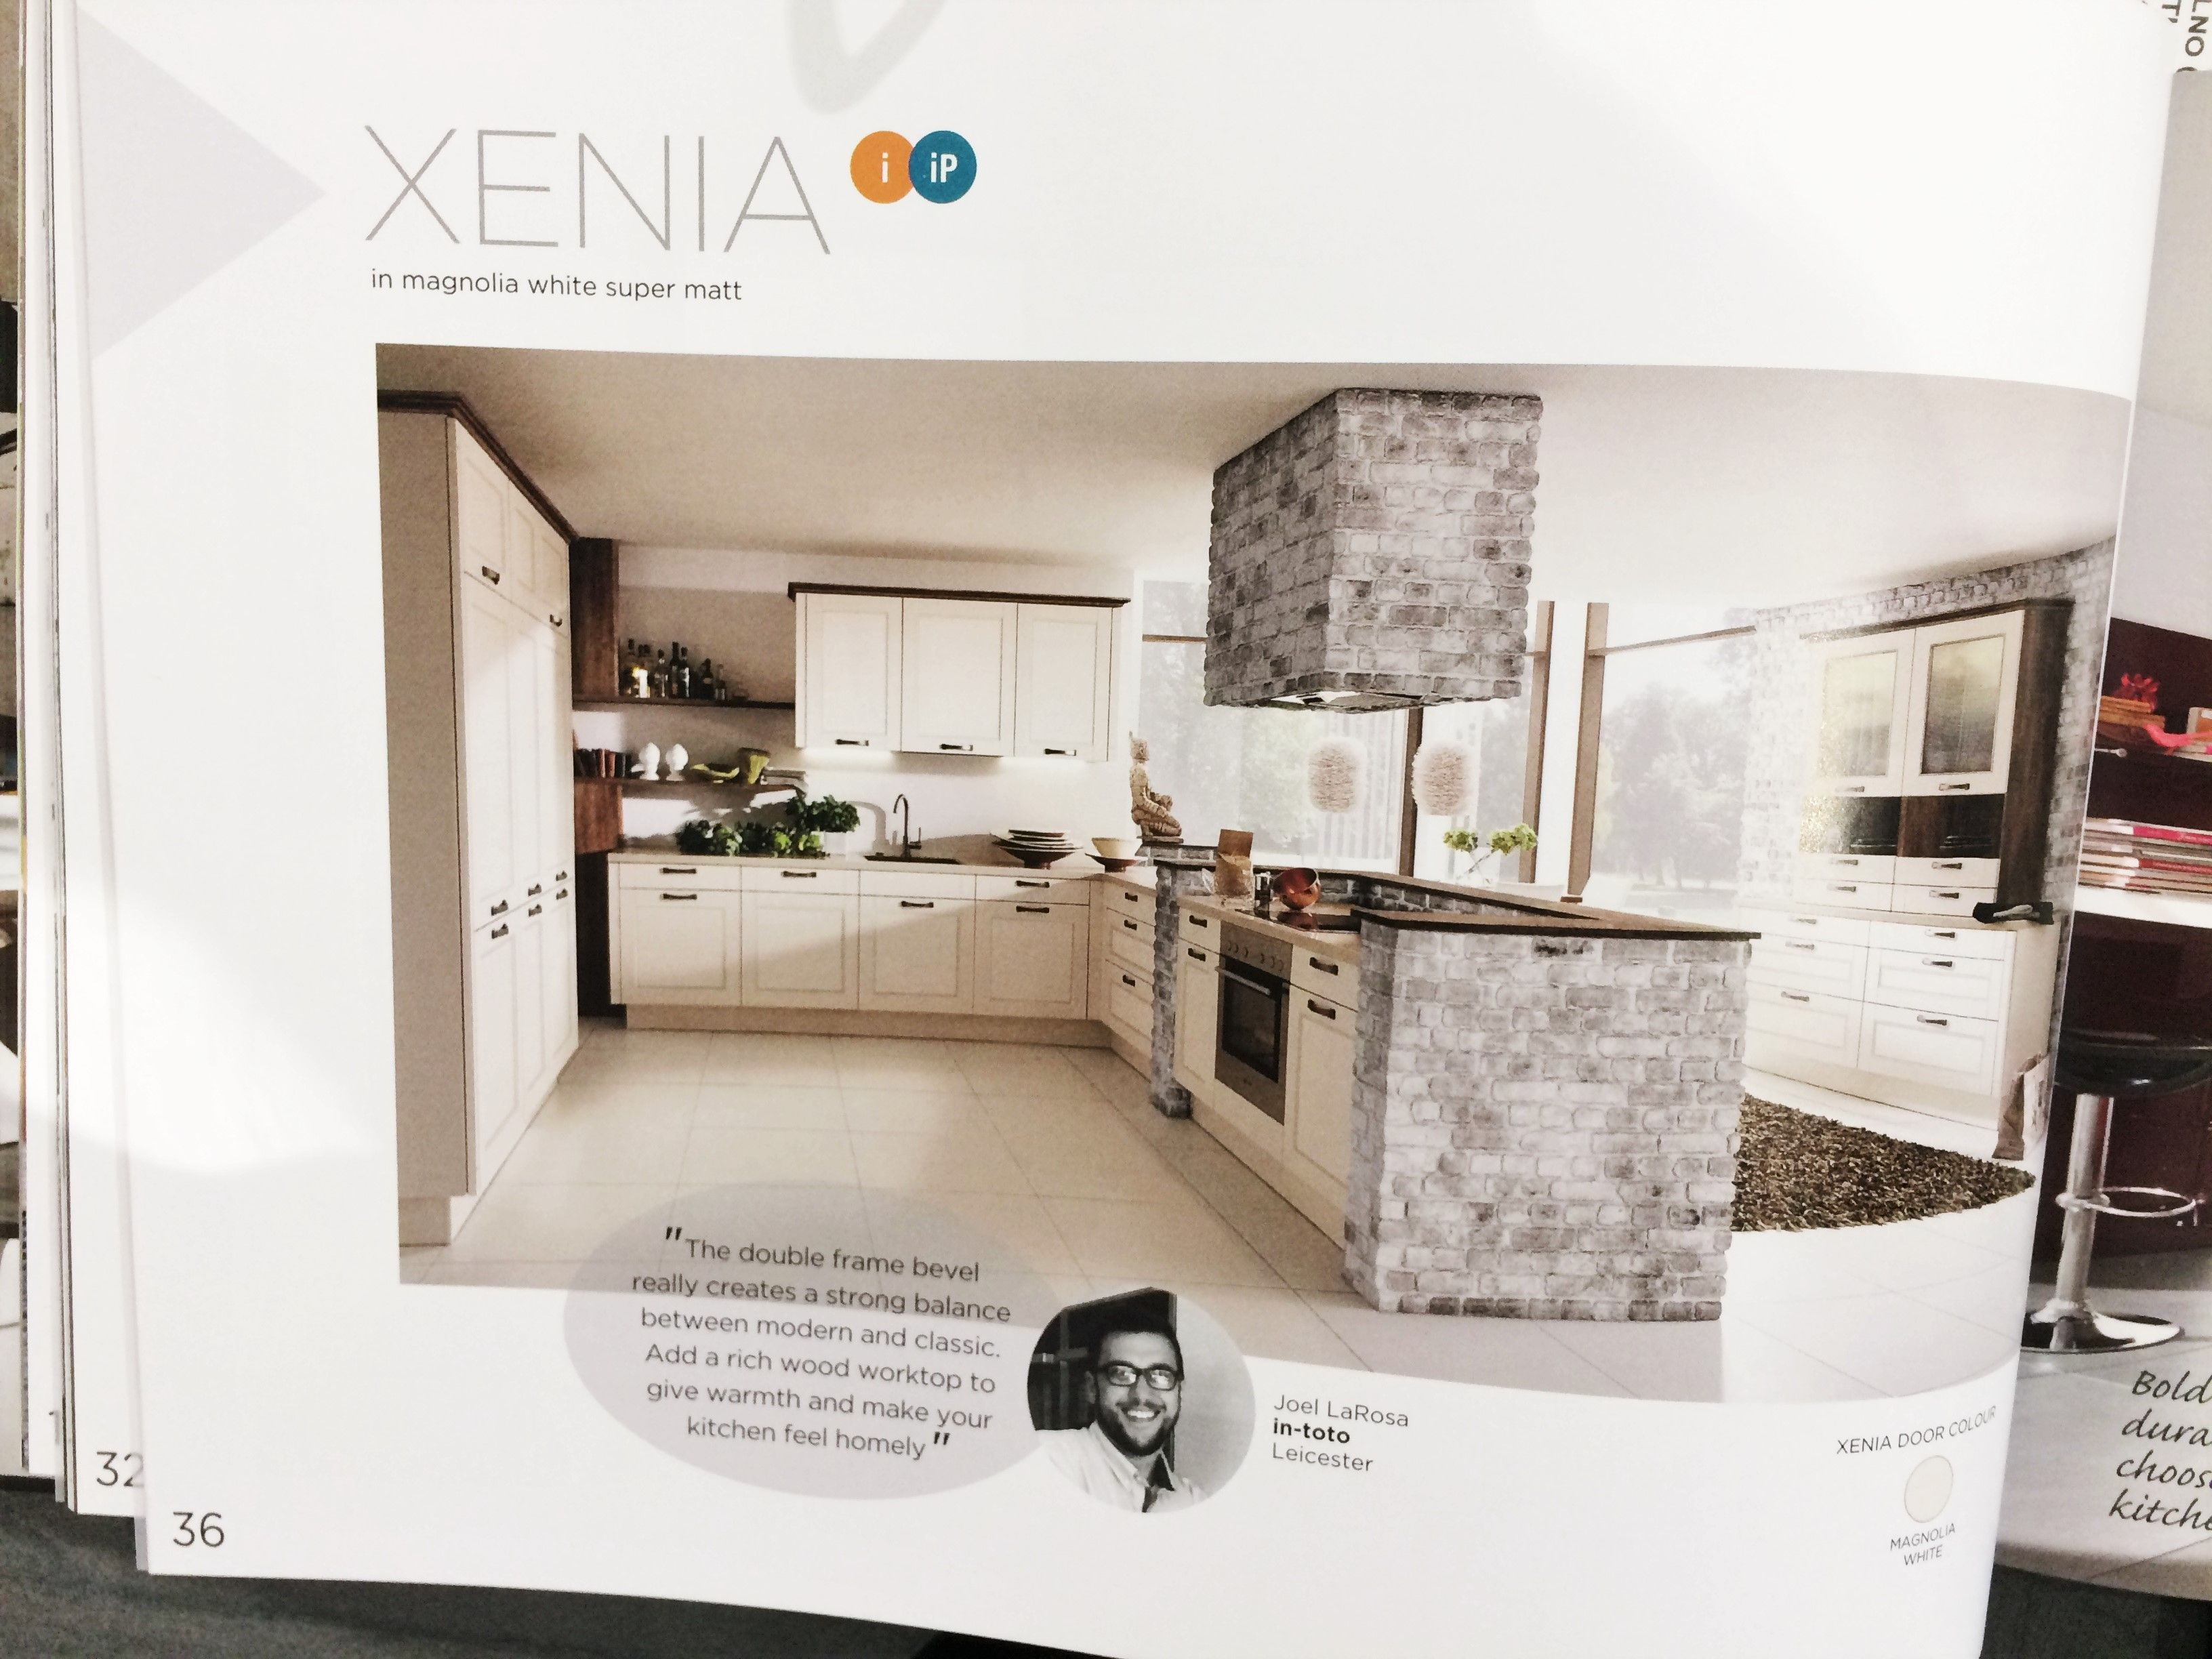 Chosen For You A Kitchen This Month Xenia In Magnolia White Super Matt